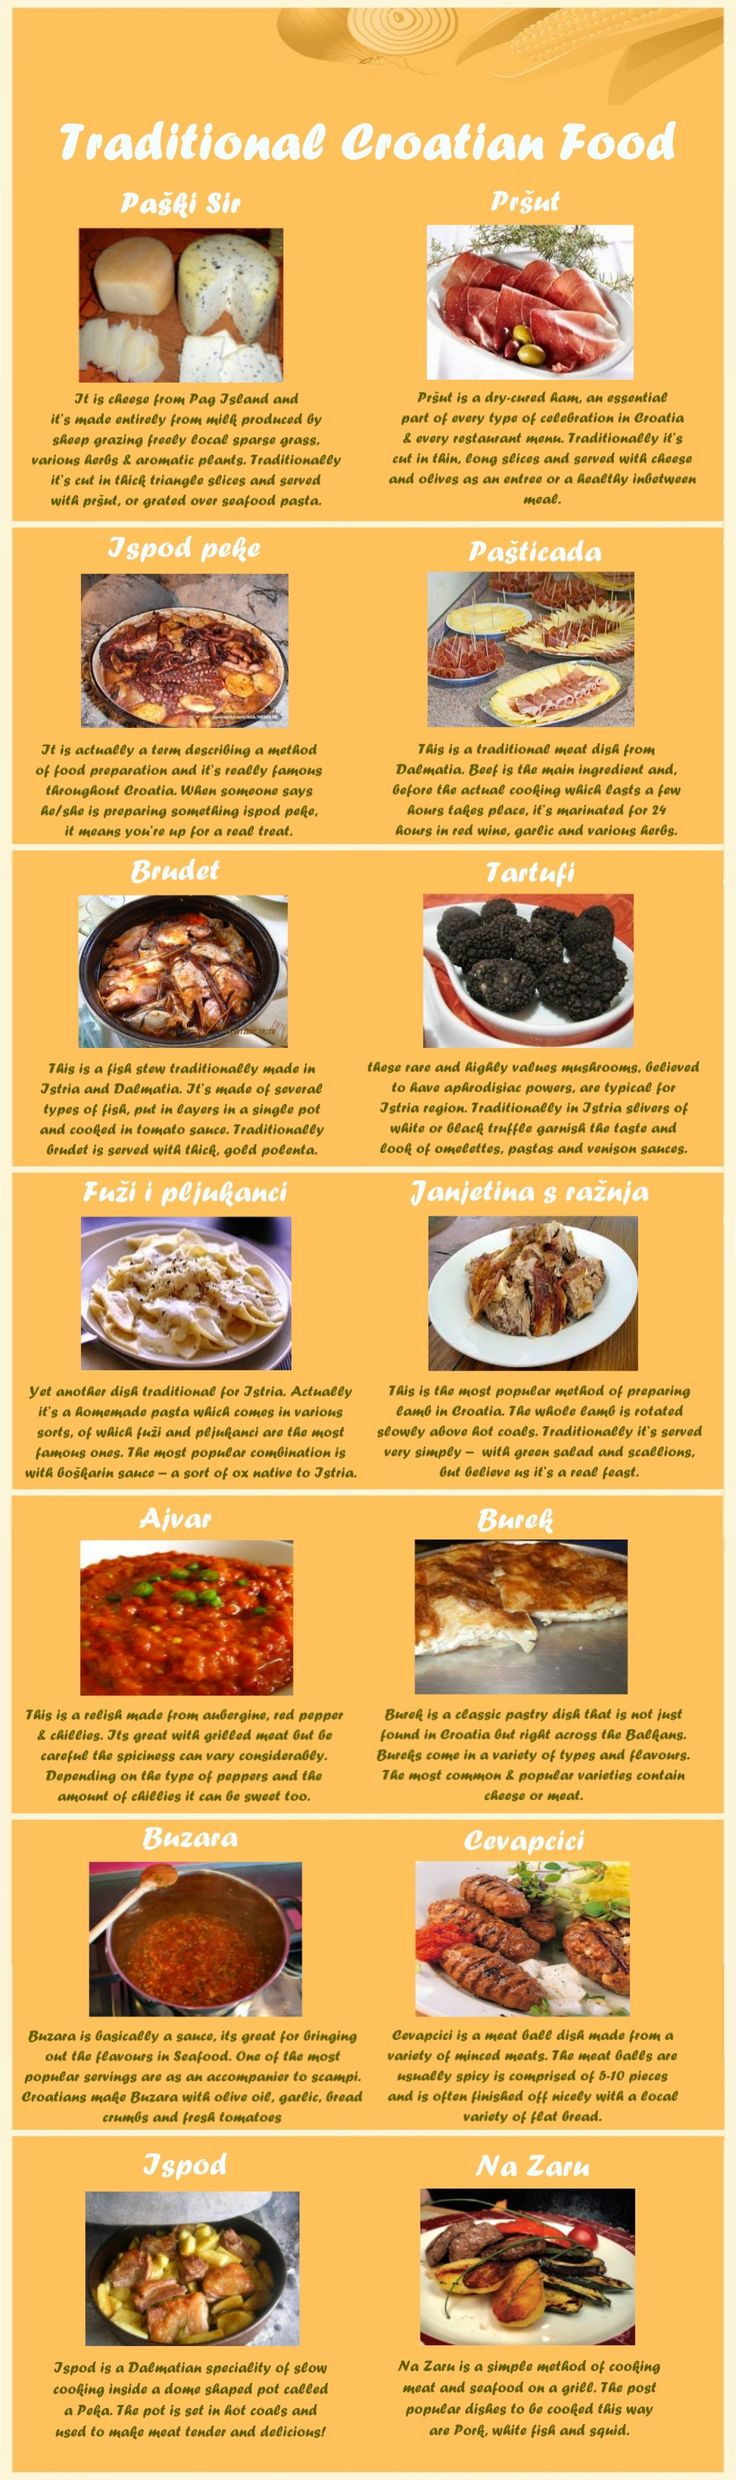 The 25 best traditional croatian food ideas on pinterest keep in mind croatian cuisine is as diverse as the countrys past here is a top list of croatian delicacies you should try not to miss forumfinder Images